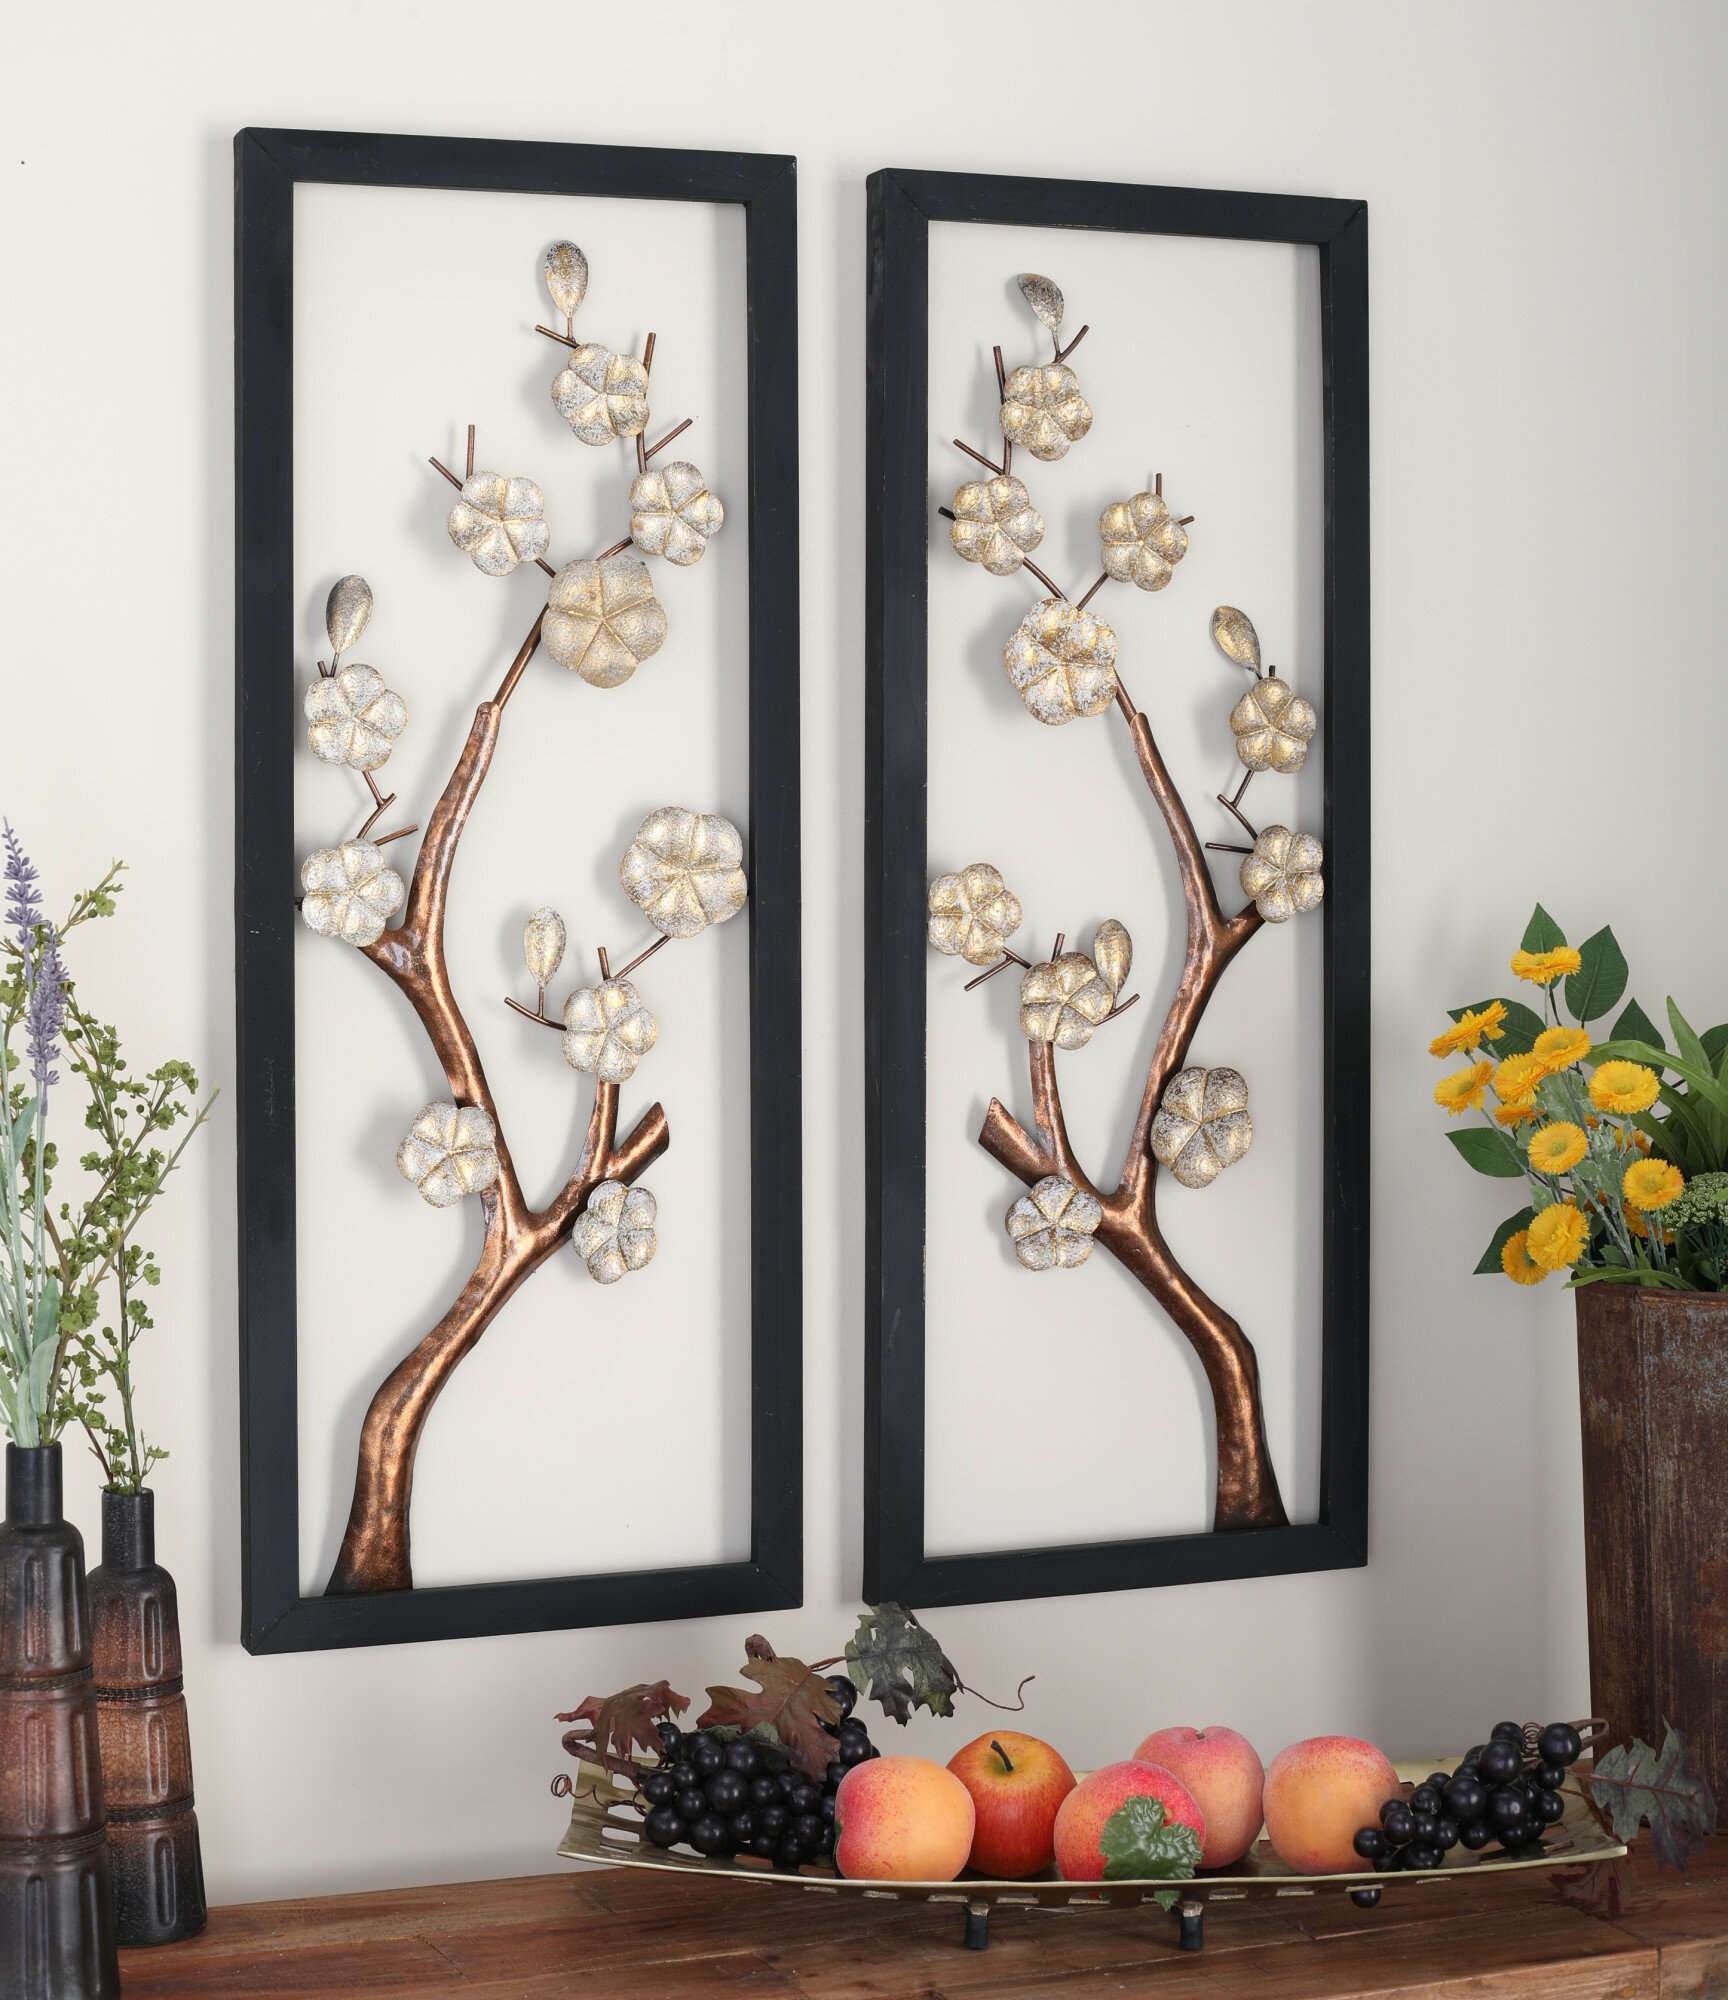 2 Piece Metal Wall Décor Set Throughout 4 Piece Wall Decor Sets By Charlton Home (View 14 of 30)